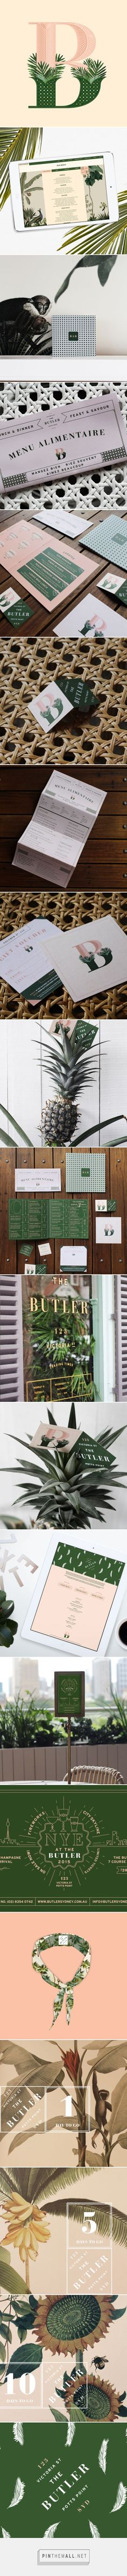 The Butler Potts Point Restaurant Branding and Menu Design by Julia Jacque | Fivestar Branding Agency – Design and Branding Agency & Inspiration Gallery